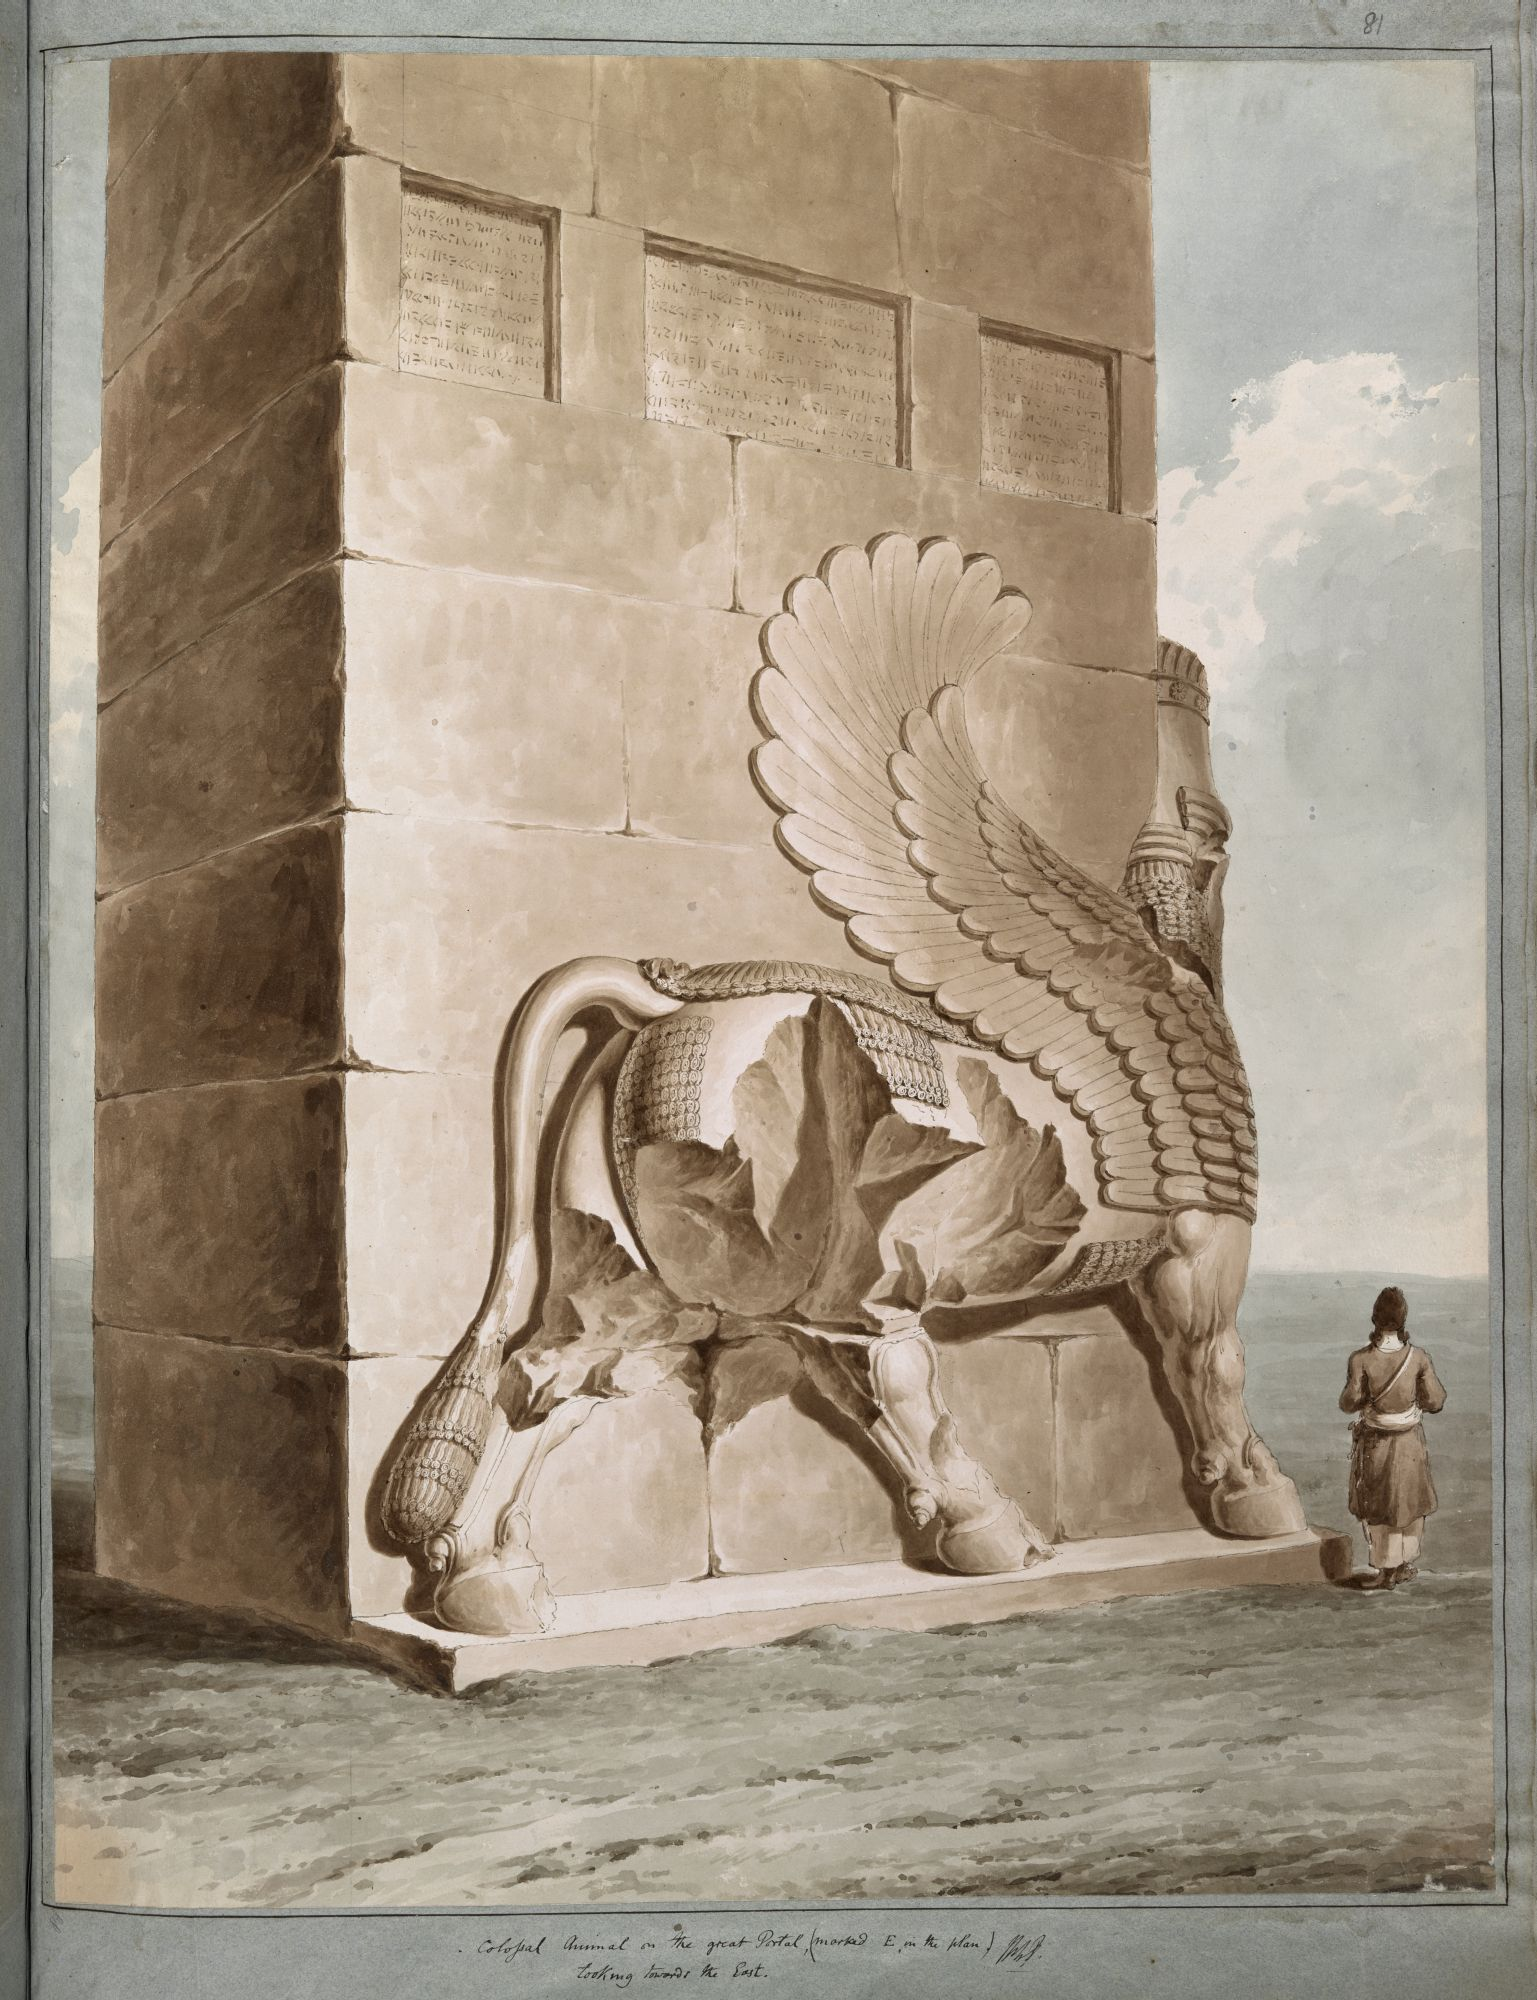 A winged bull at Persepolis, by Sir Robert Ker Porter.